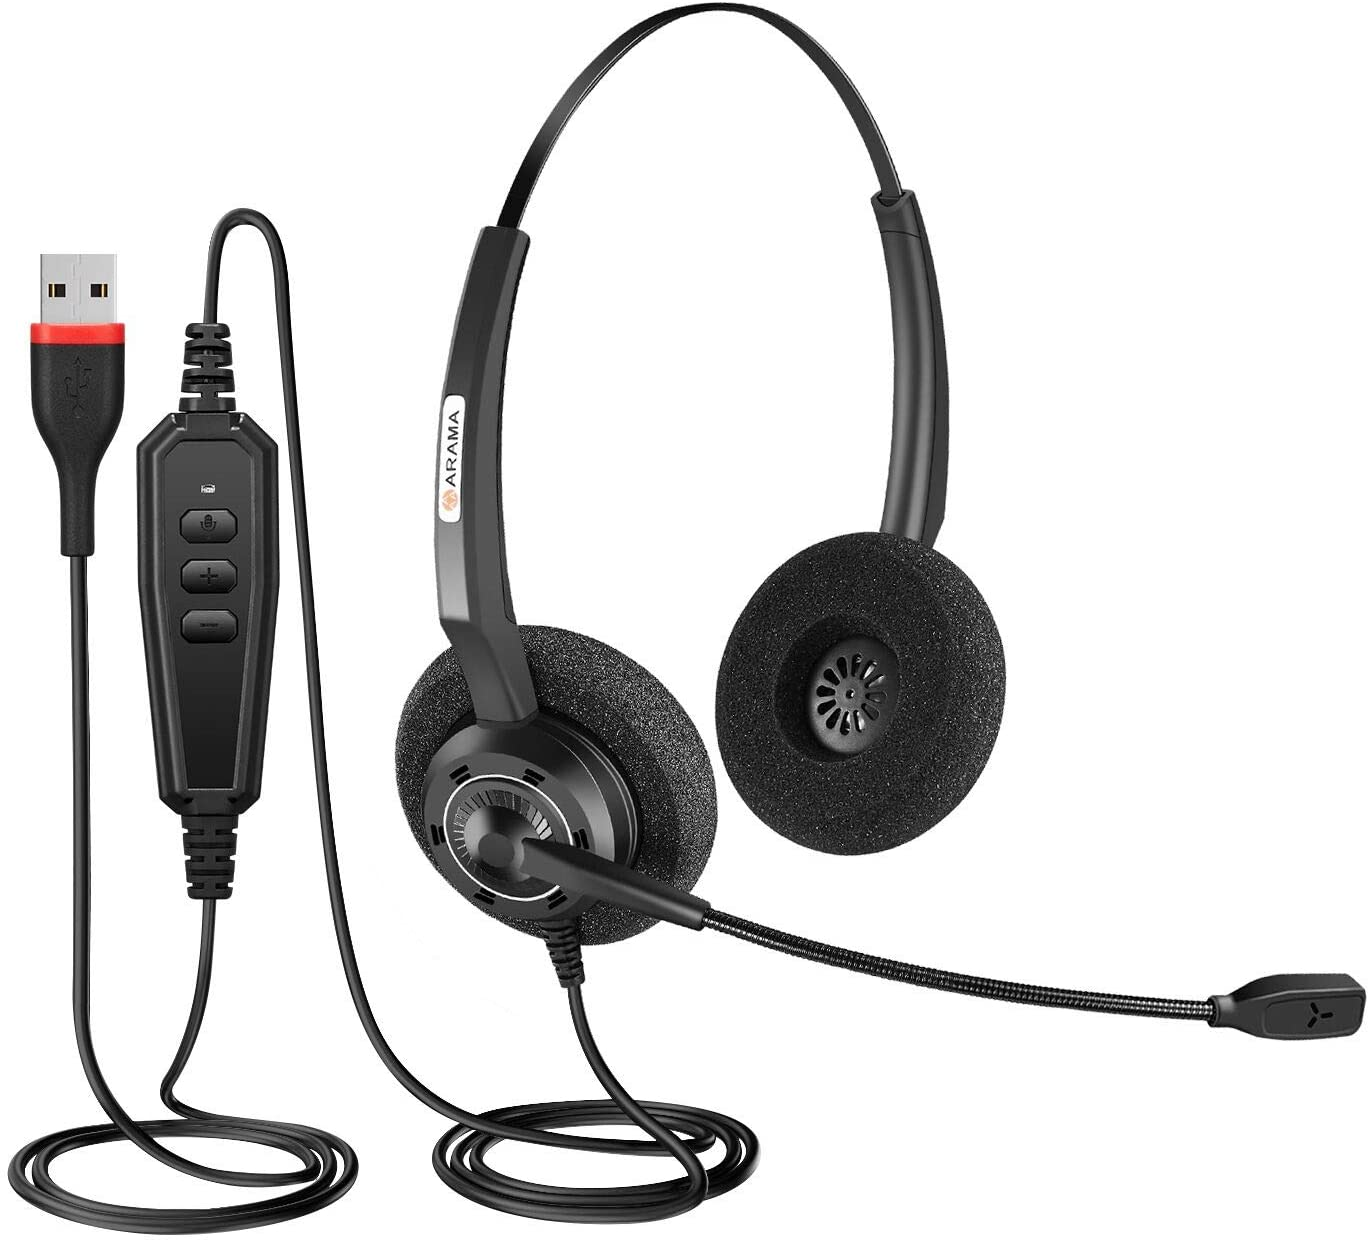 Arama USB Headset with Microphone Noise-Cancelling Wideband Computer Headset for Skype Business UC, Softphone,PC Webinar Call Center Office